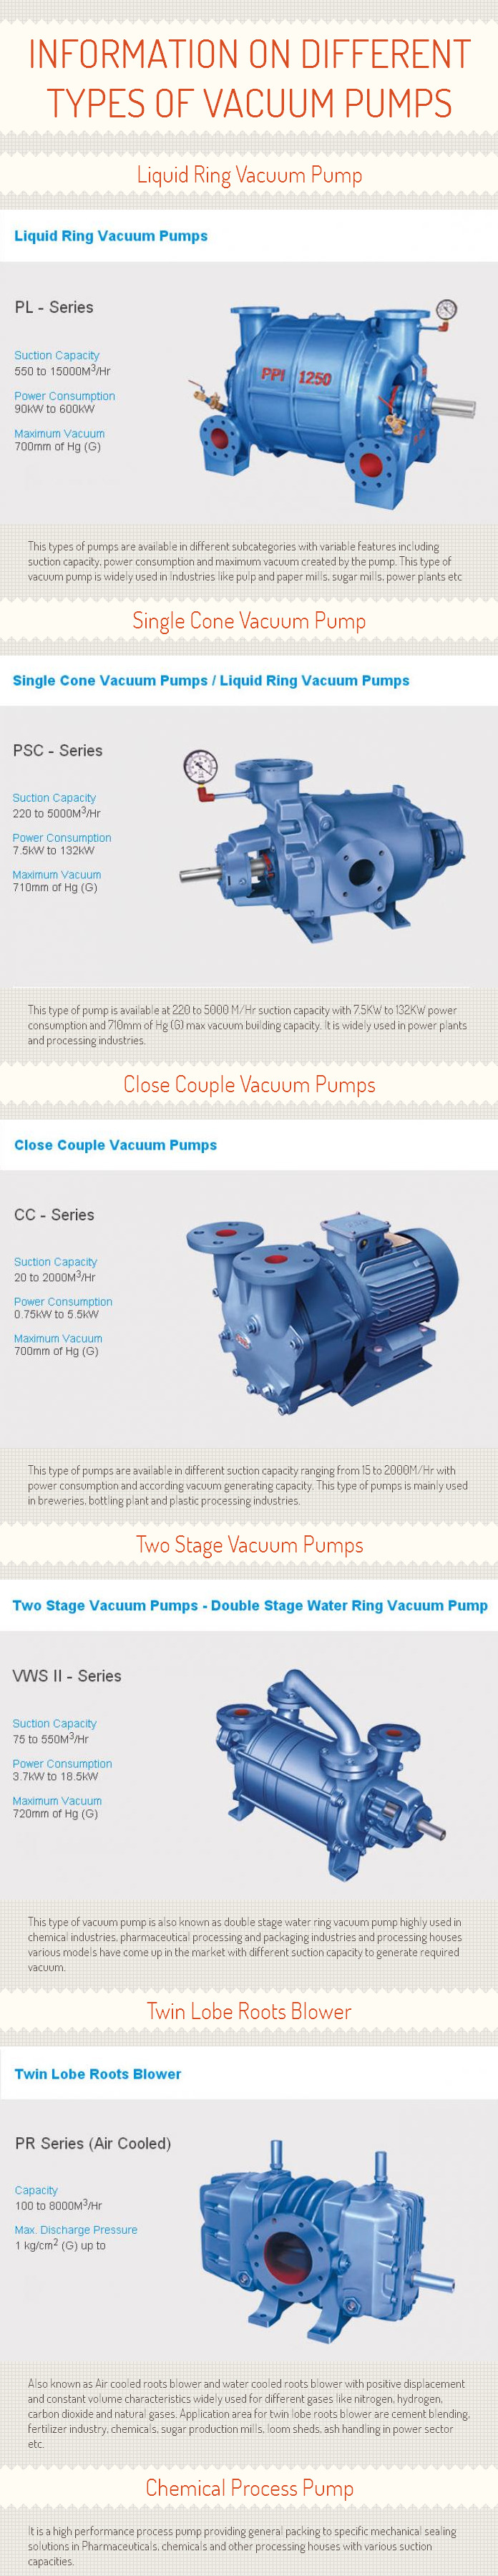 Information on Different Types of Vacuum Pumps